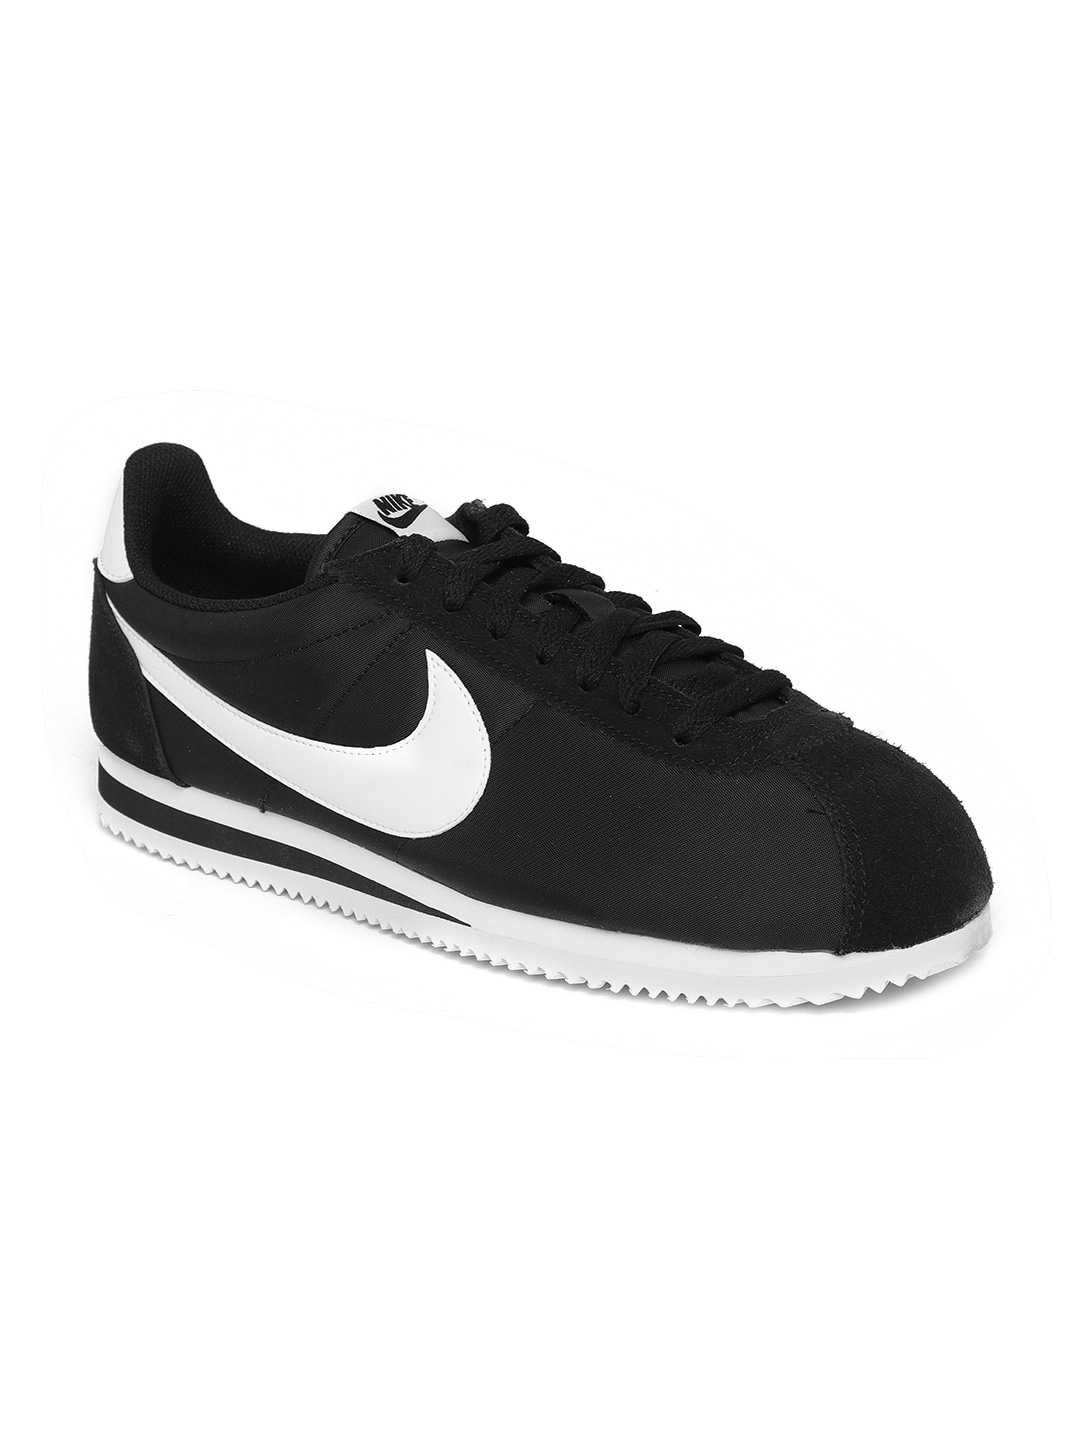 new product fb2df f19ee Nike Cortez Casual Shoes - Buy Nike Cortez Casual Shoes onli